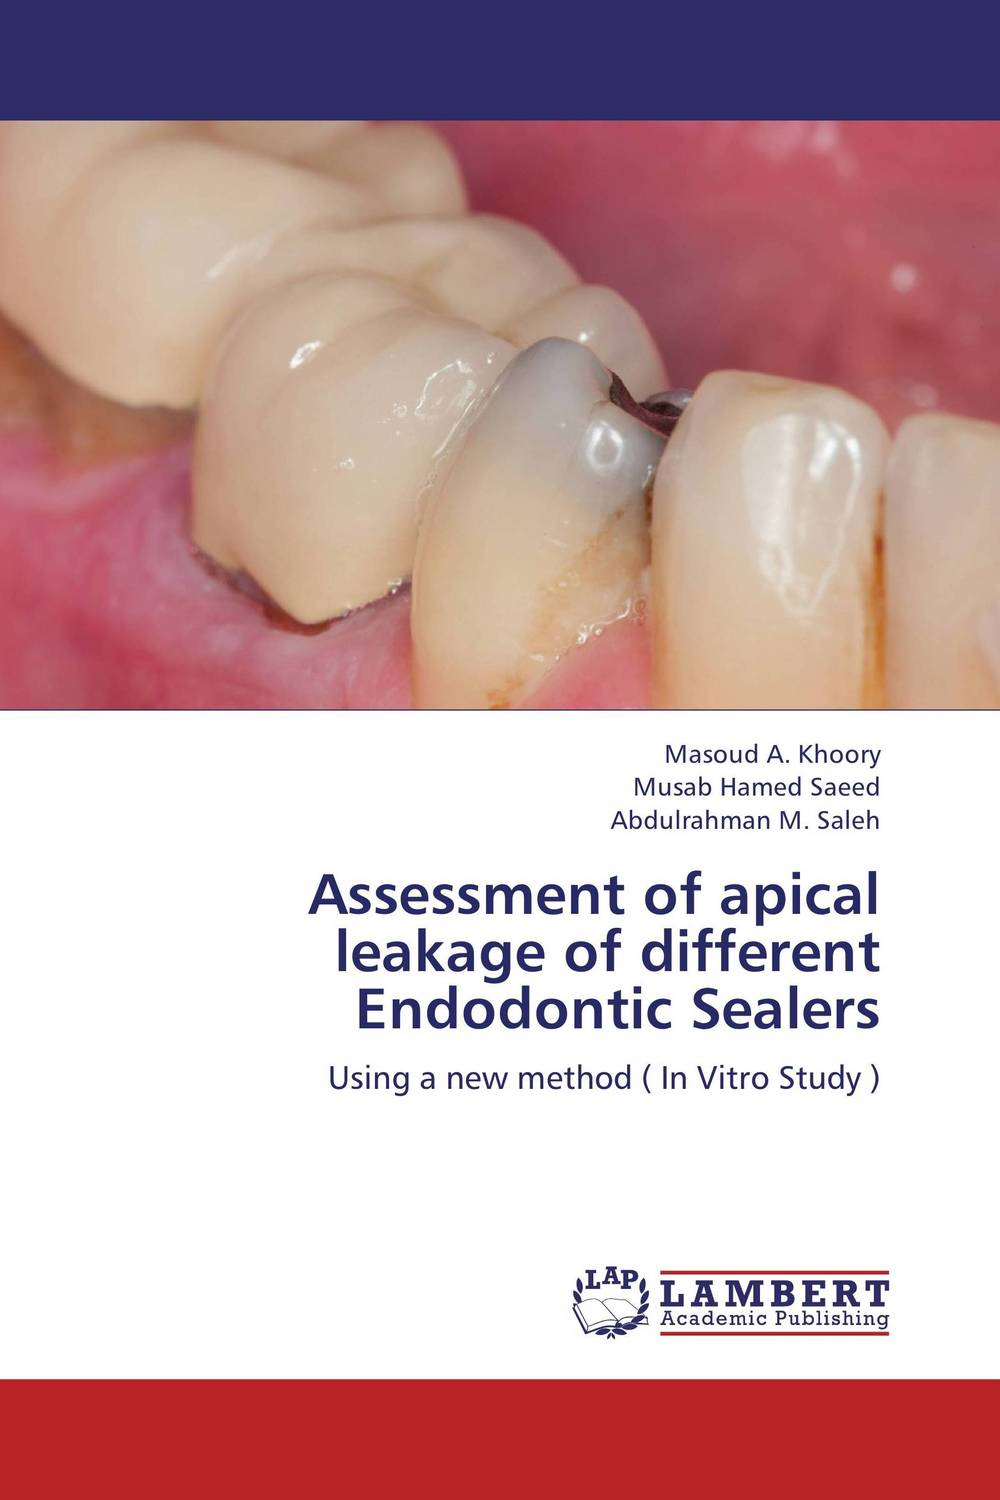 Assessment of apical leakage of different Endodontic Sealers endodontic sealers an overview